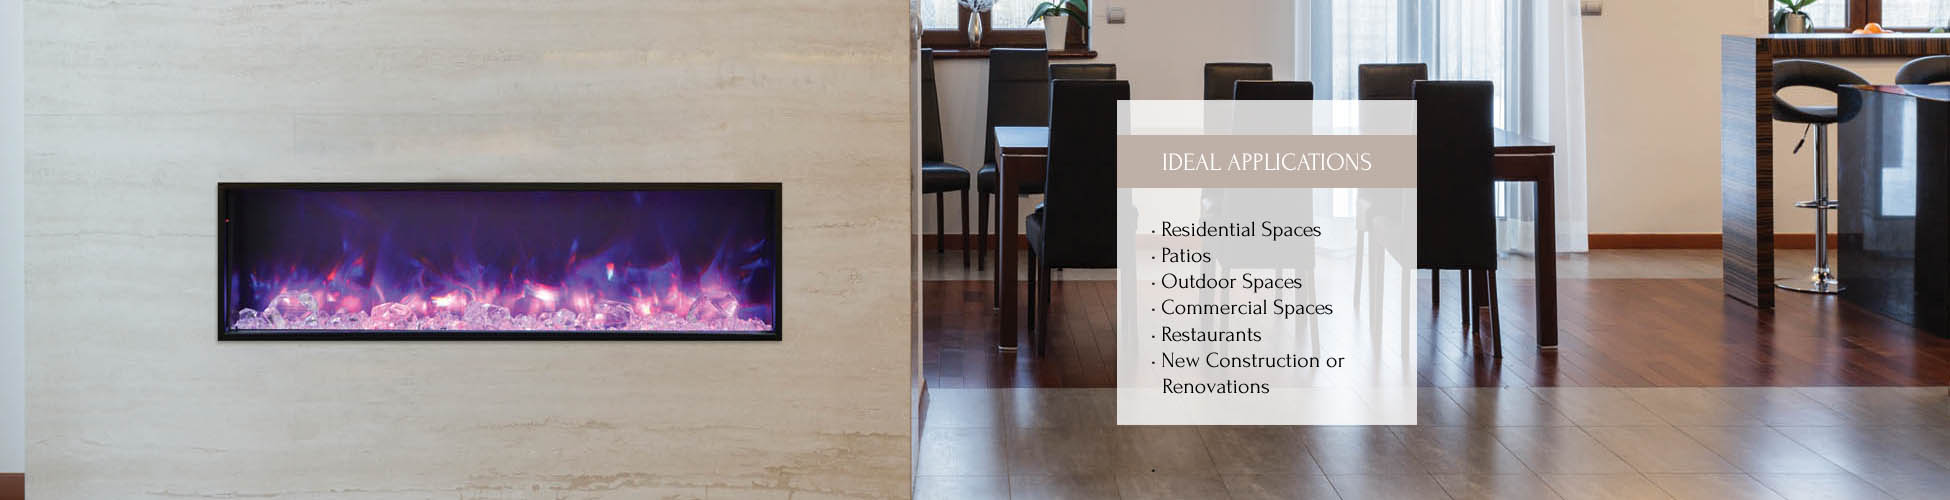 BI-50-SLIM electric fireplace by Amantii